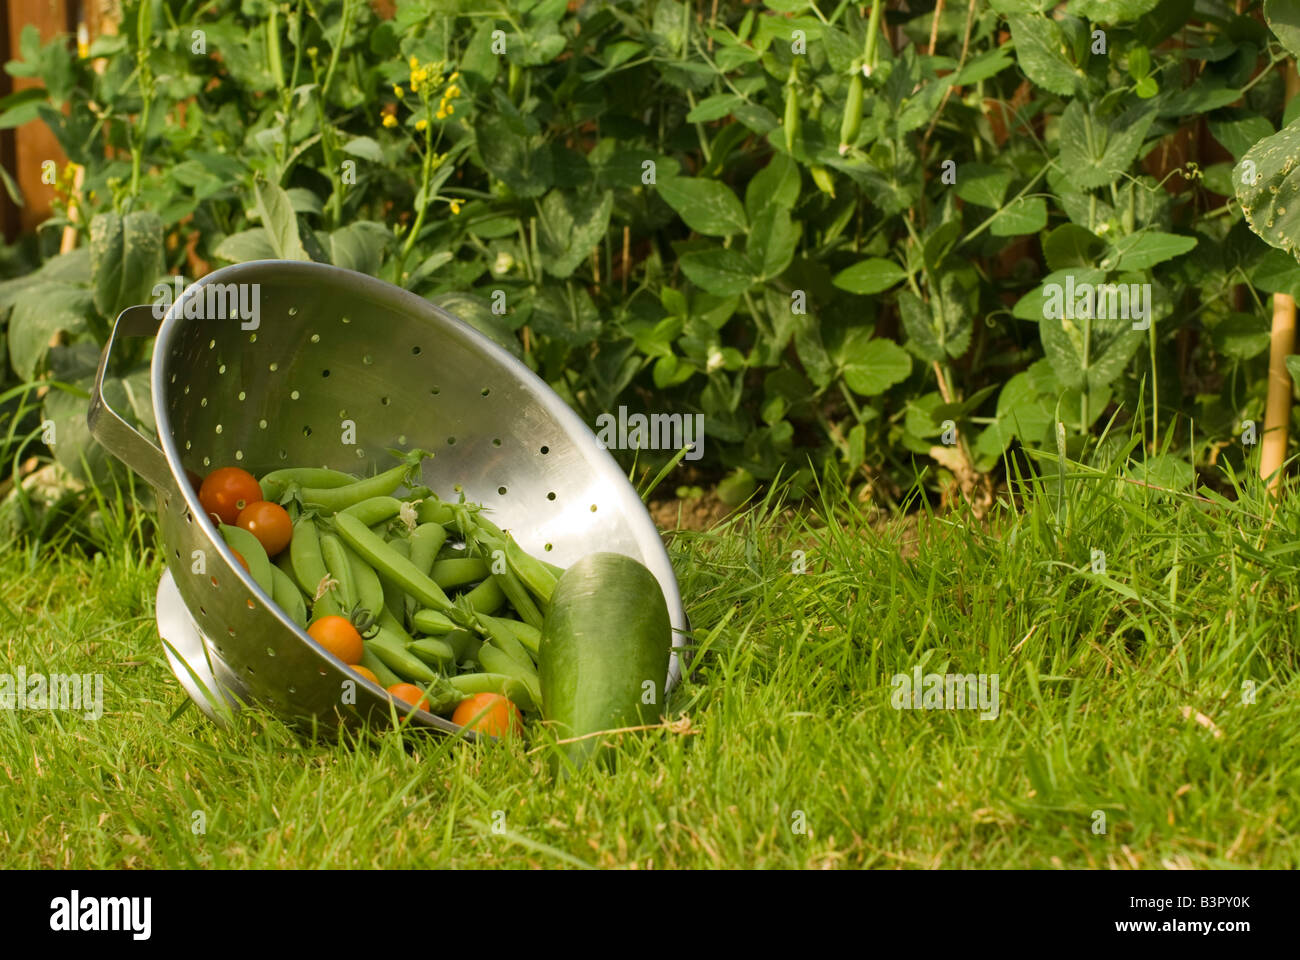 Garden produce spills from a colinder that sits on it's side on a lawn infront of the plants that produced it. - Stock Image